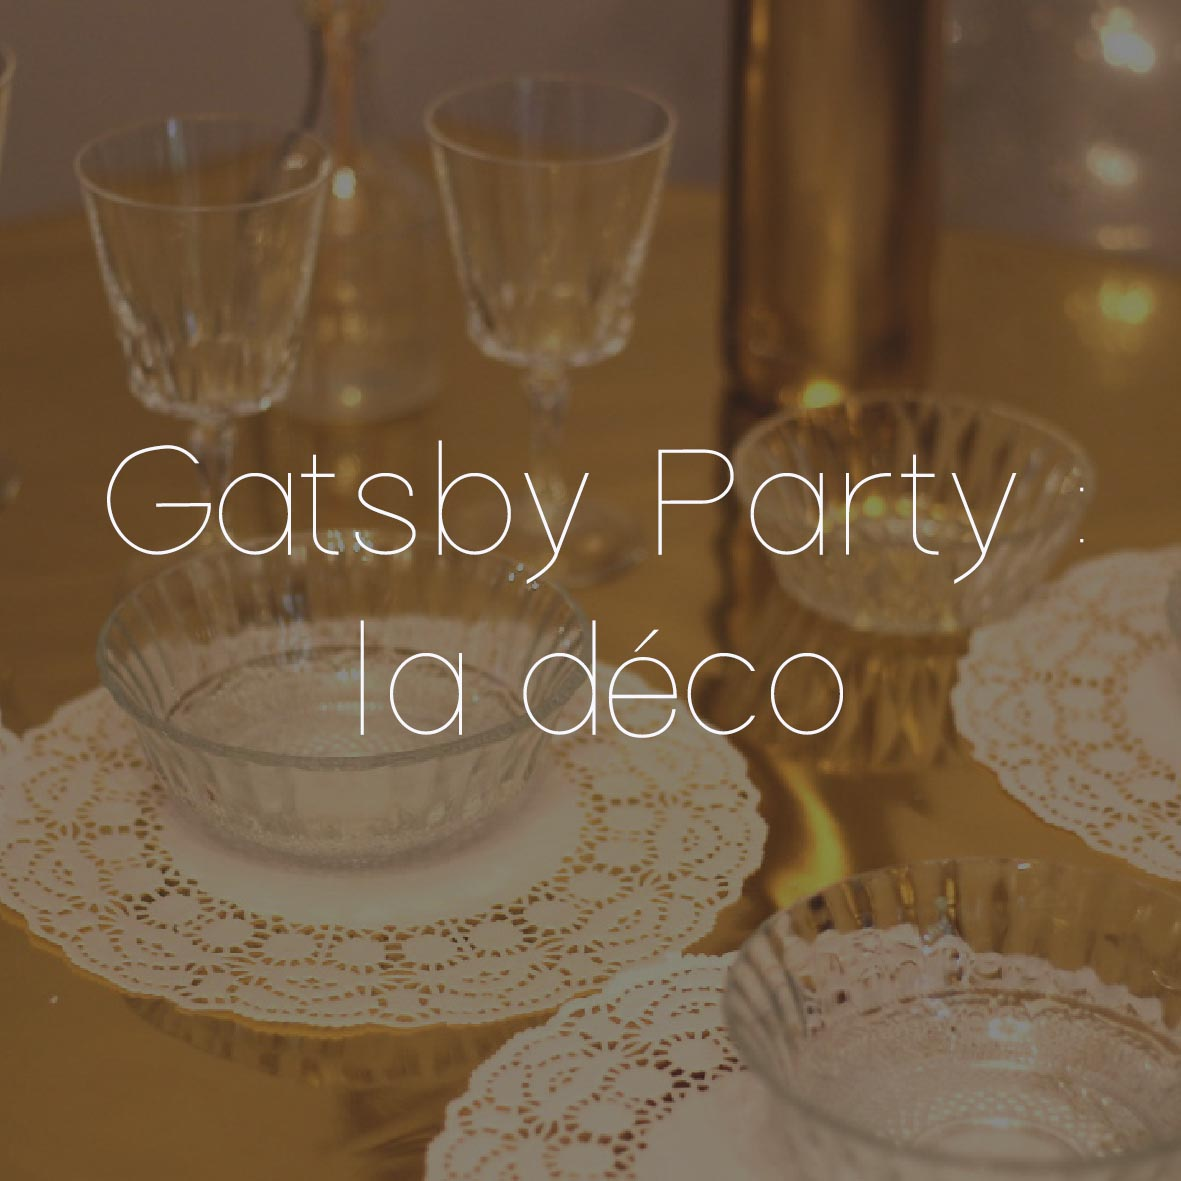 36 GATSBY PARTY 1 DECO2